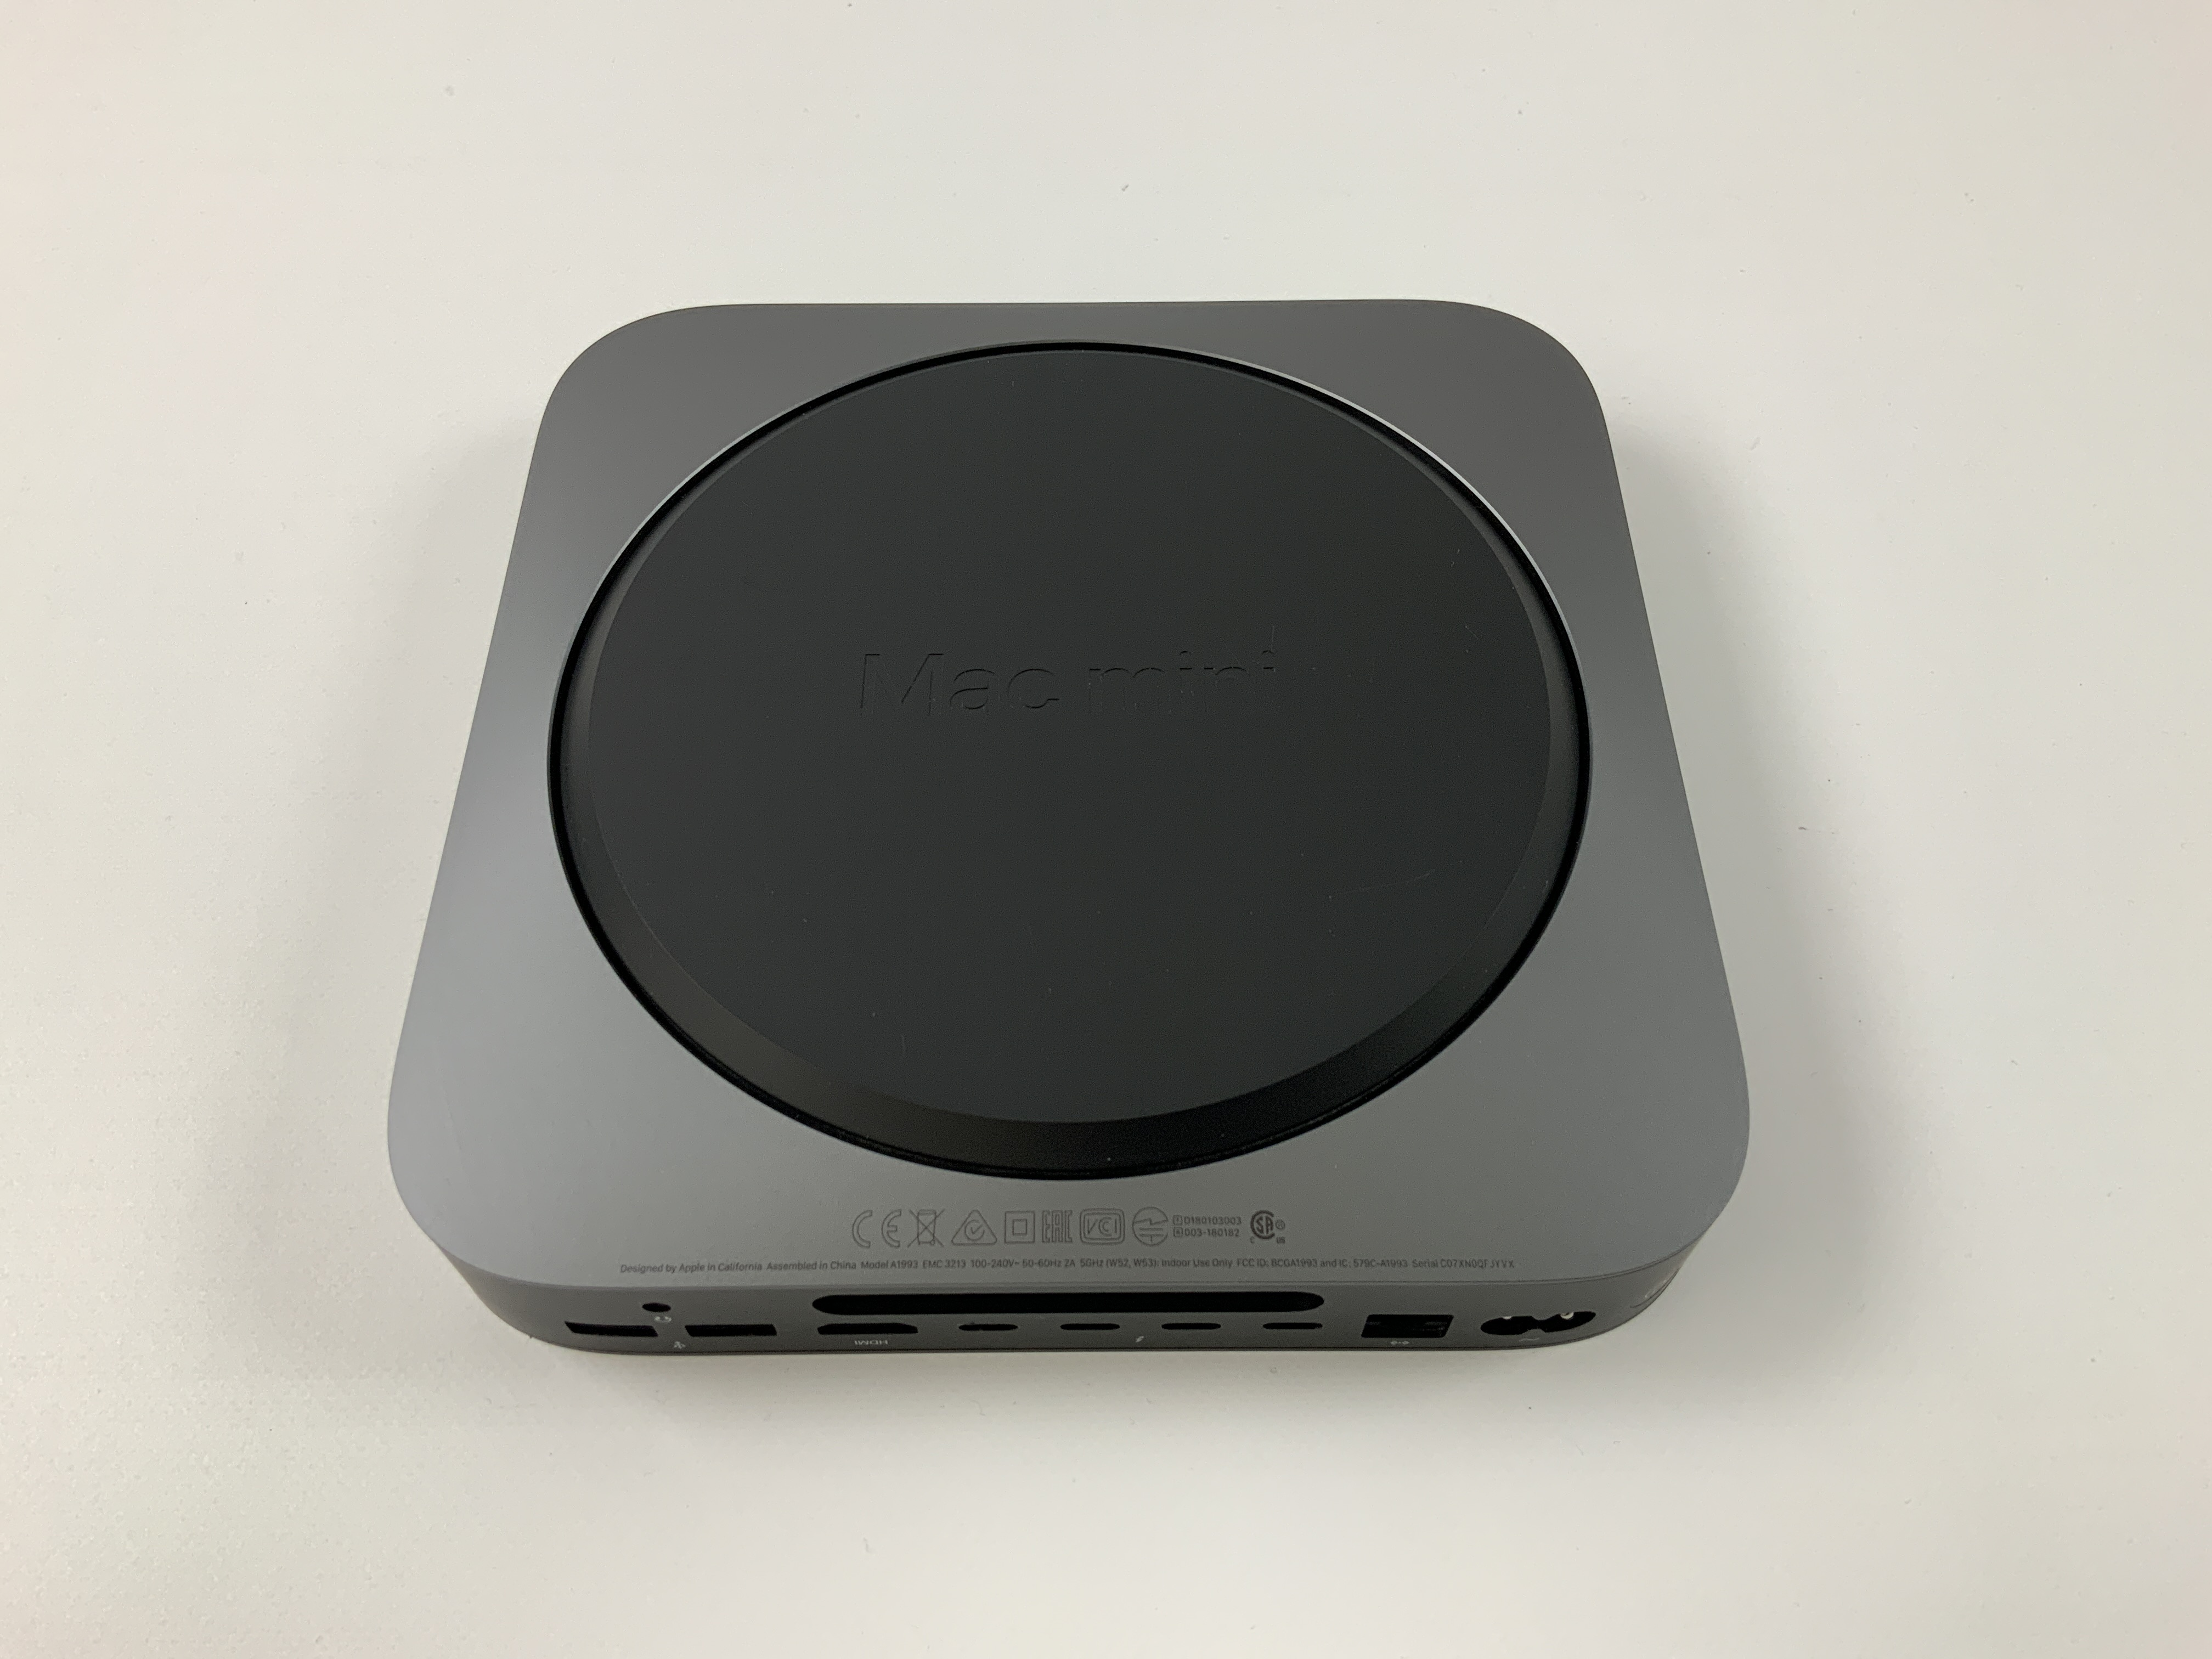 Mac Mini Late 2018 (Intel 6-Core i5 3.0 GHz 8 GB RAM 256 GB SSD), Intel 6-Core i5 3.0 GHz, 8 GB RAM, 256 GB SSD, Afbeelding 2